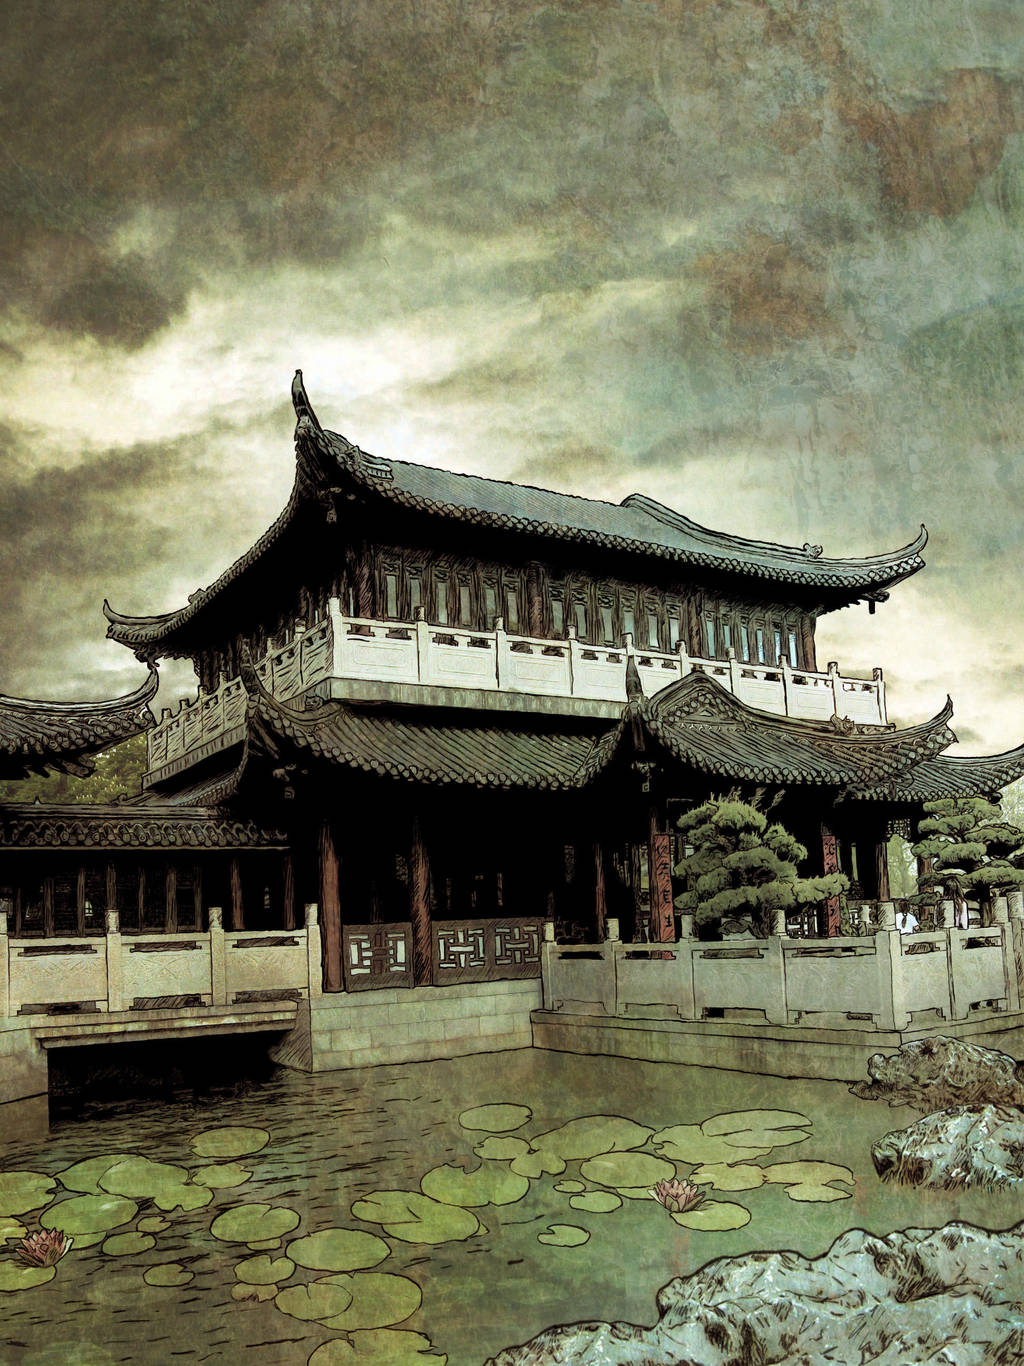 The Temple by Gymdawg